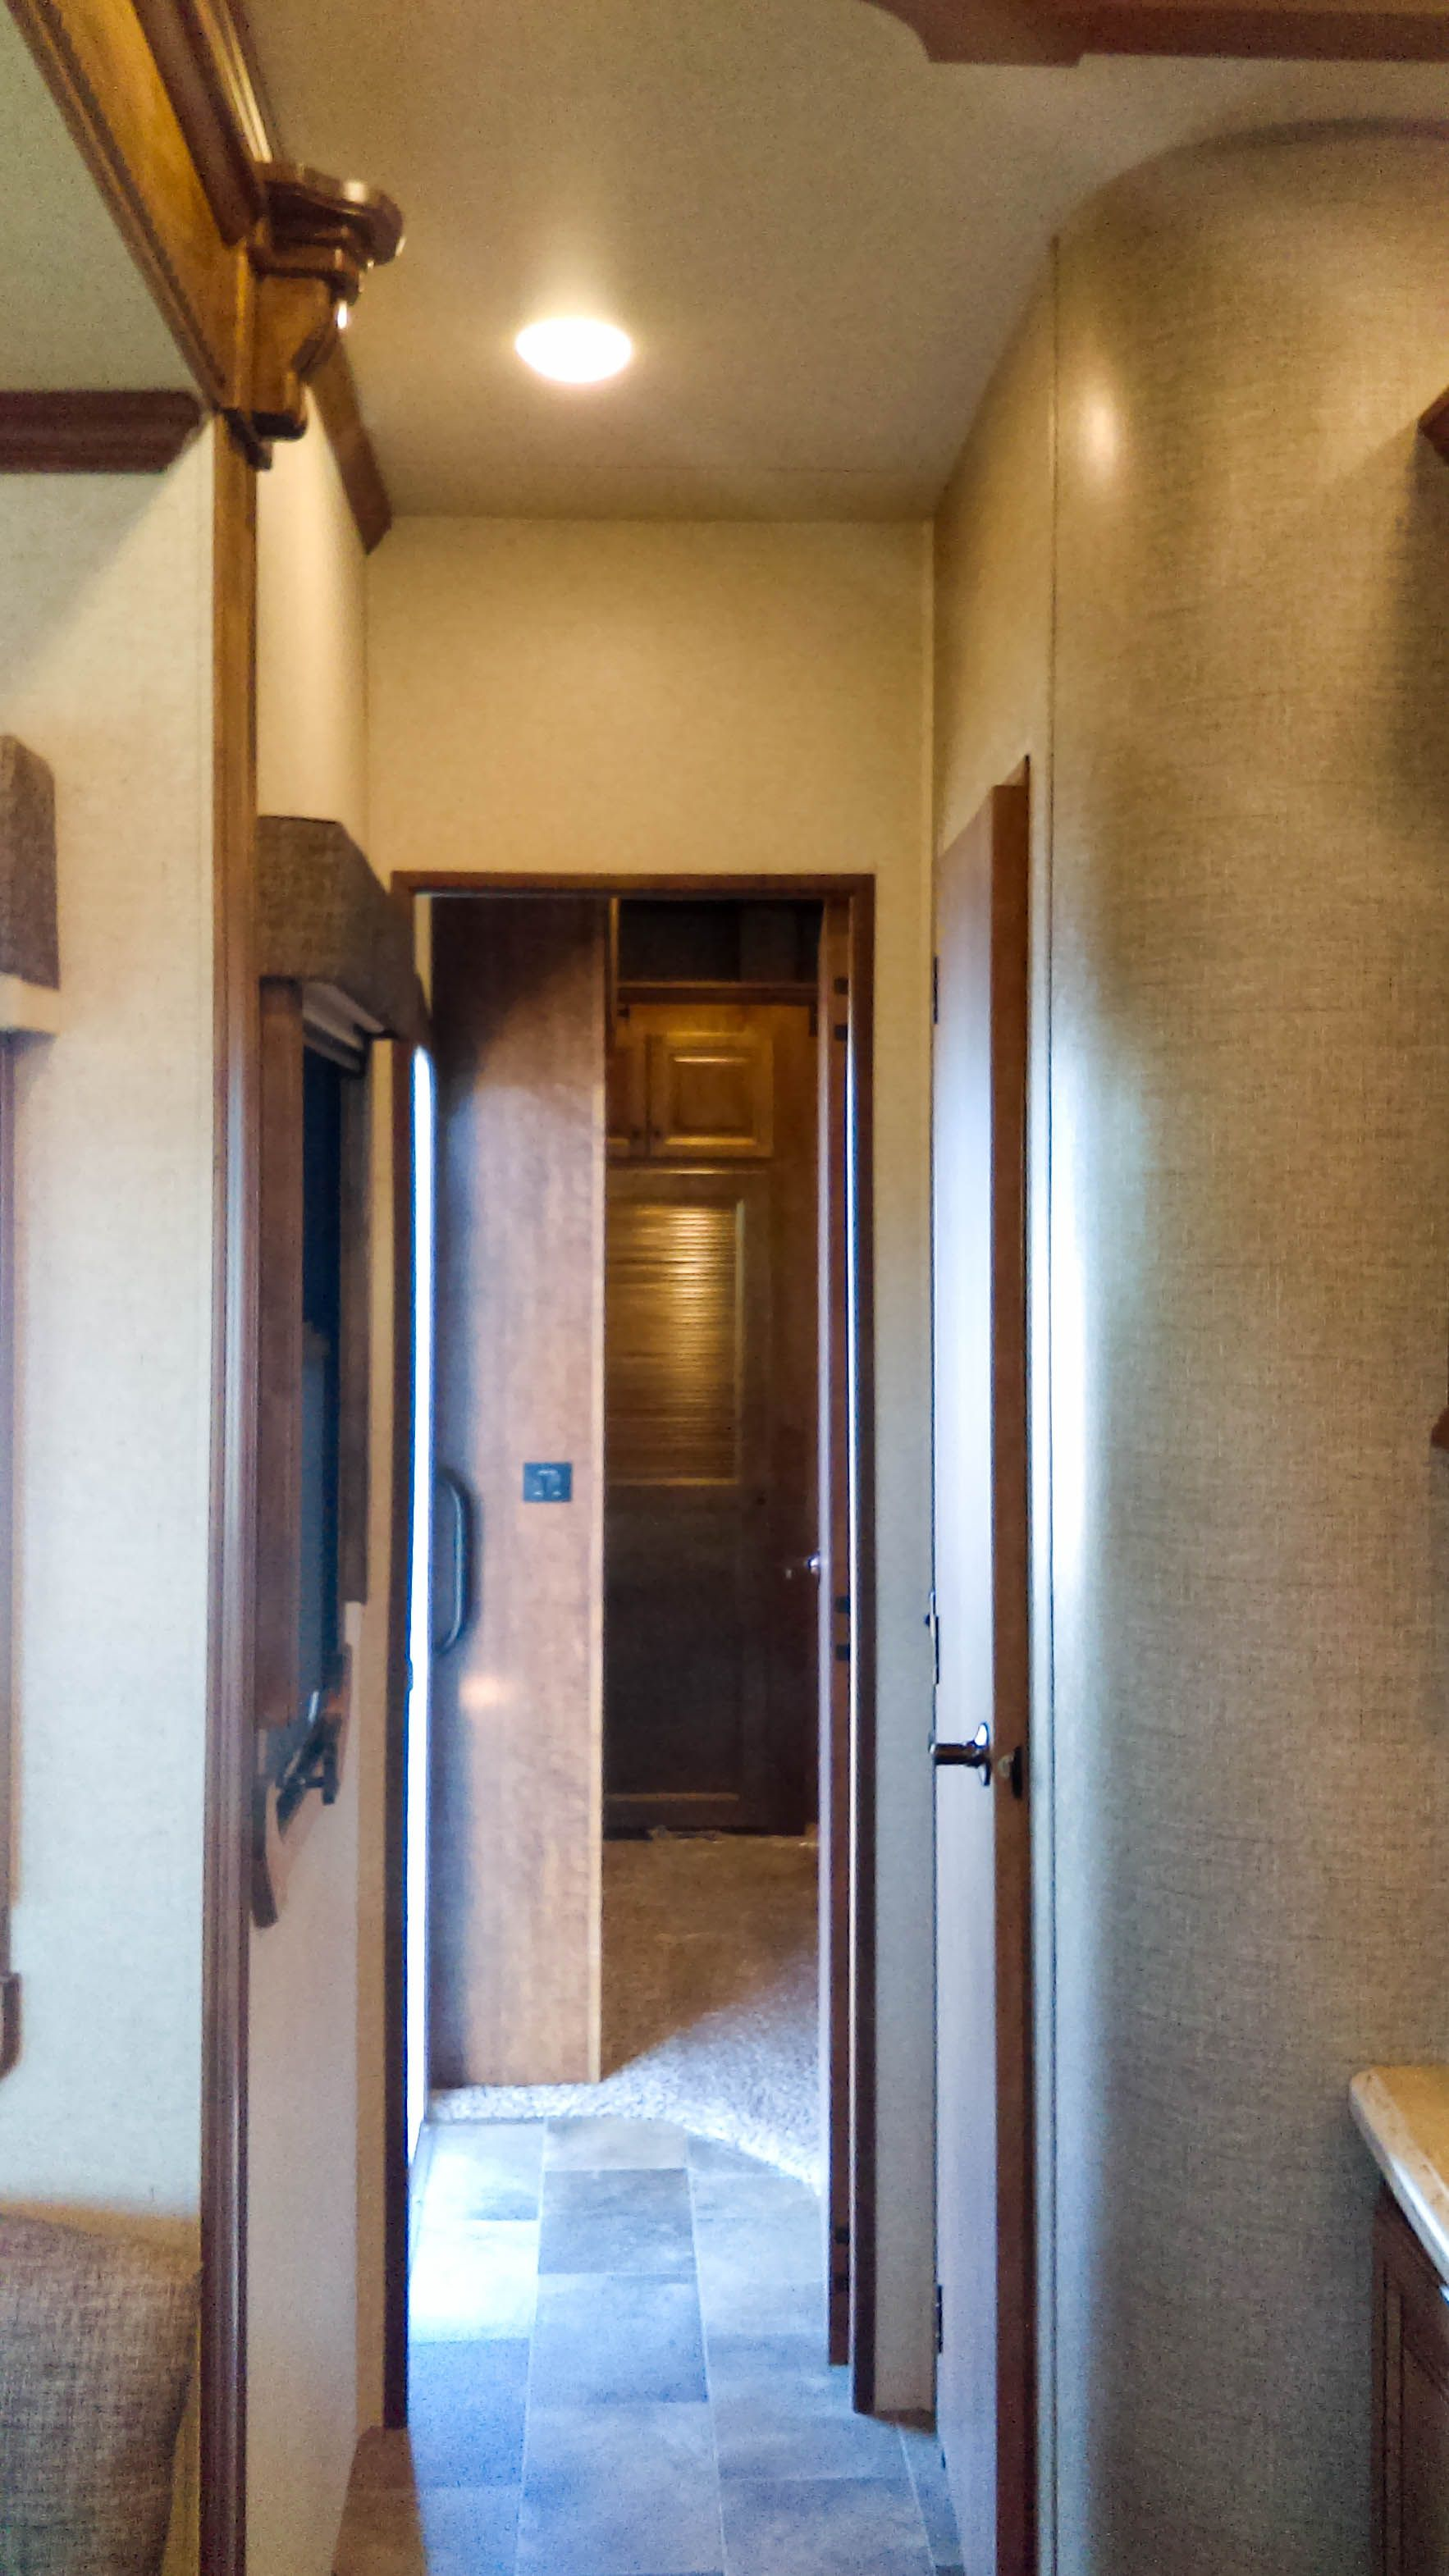 With its incredible ceiling height and beautiful cabinetry, the 2016 Landmark Madison feels upscale yet cozy like home. #MyHeartland #Landmark Gallery: http://www.heartlandrvs.com/classes/luxuryfw/lm365-landmark